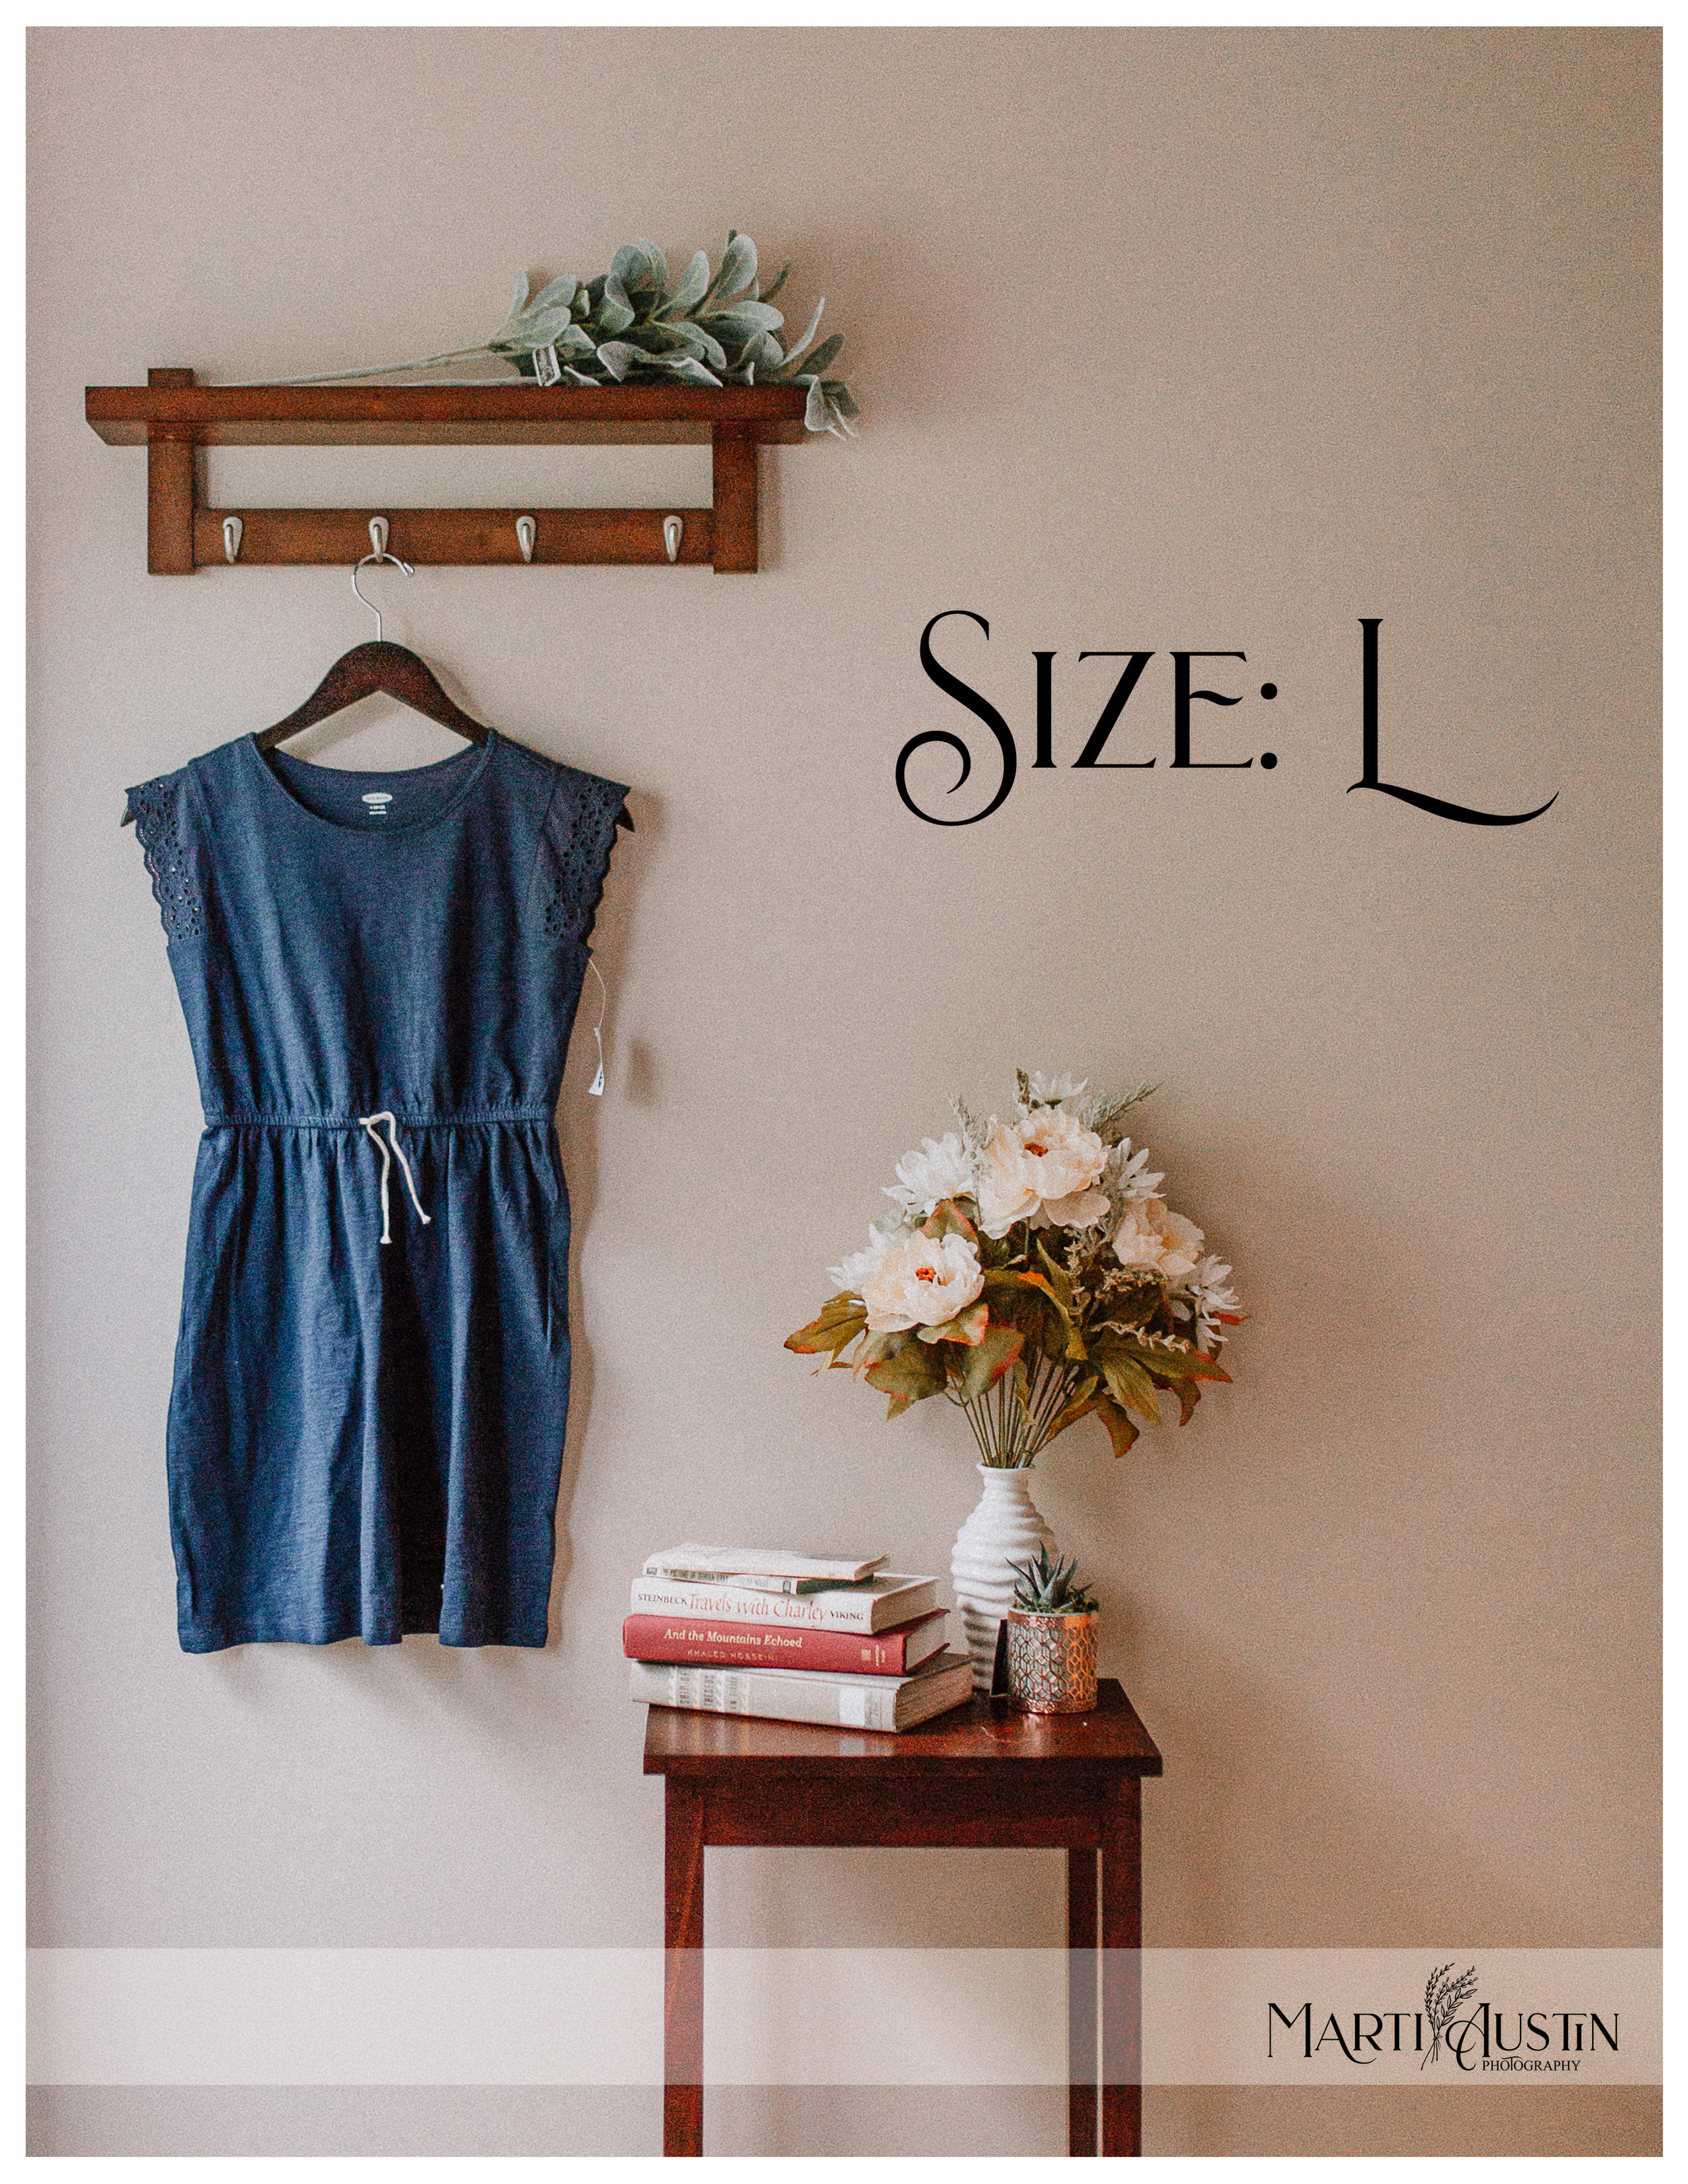 Girls blue dress hanging on the wall next to a table with books and flowers